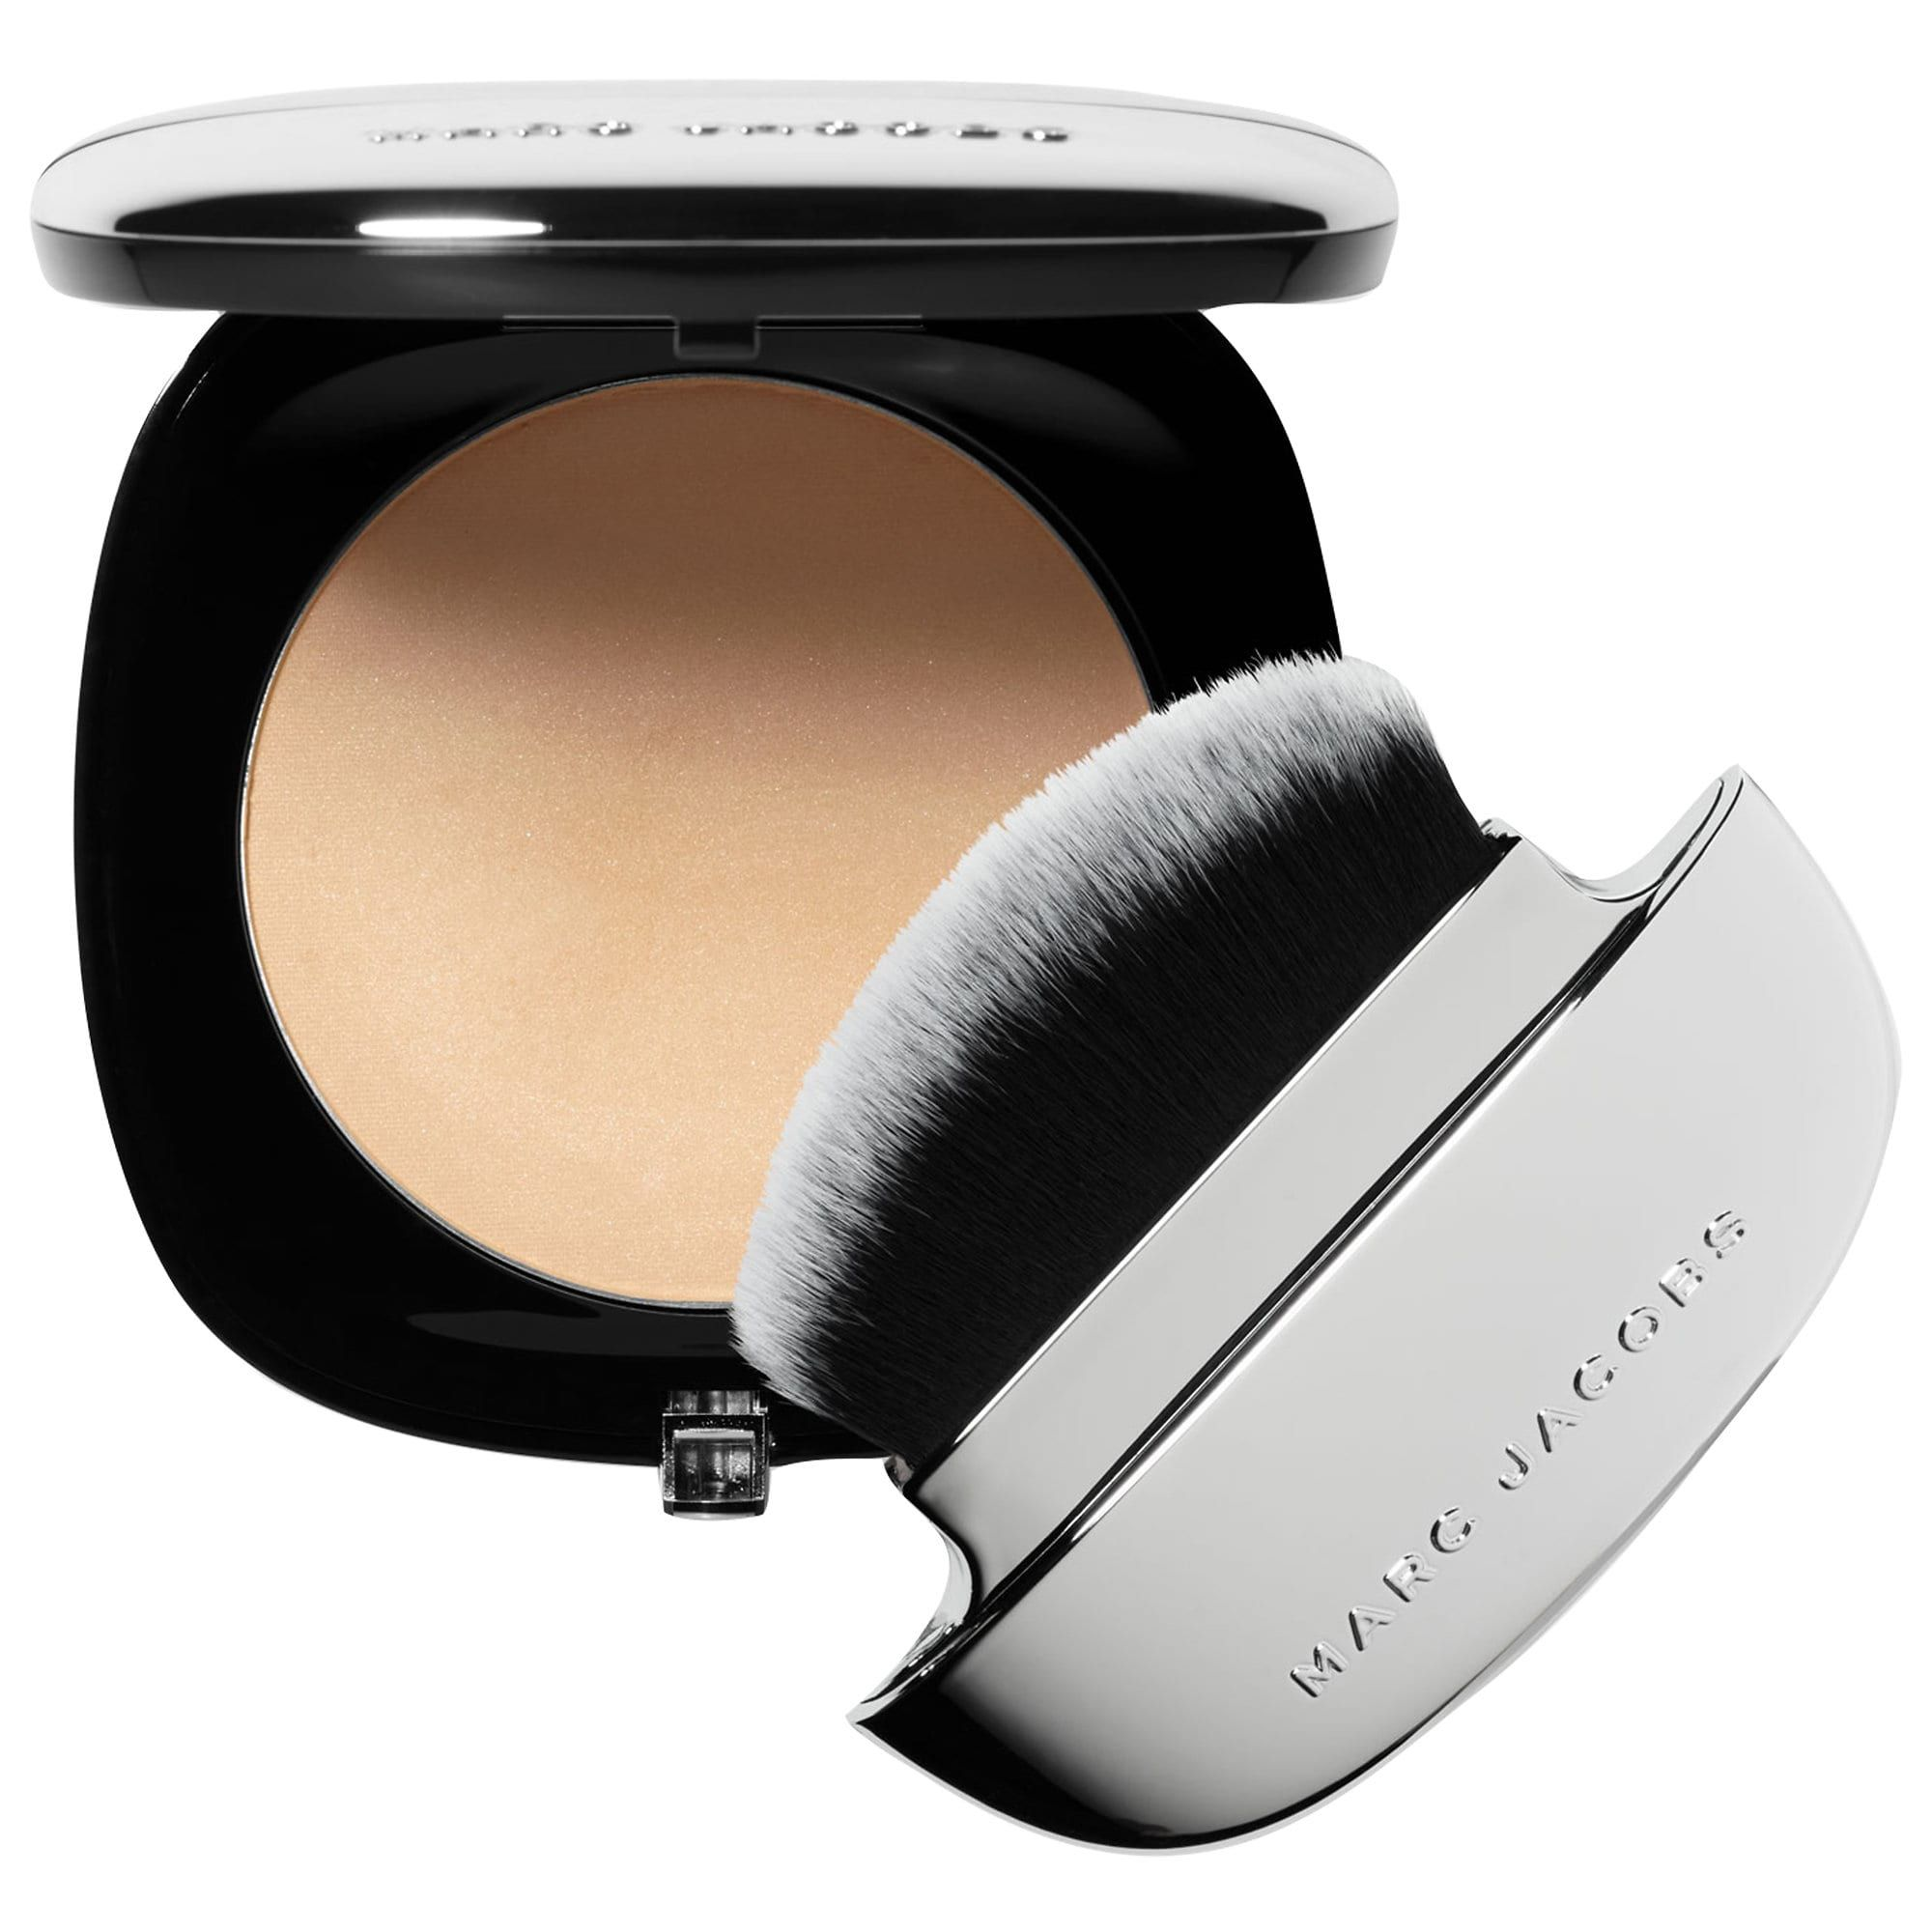 For Touch-Ups Accomplice Instant Blurring Beauty Powder Marc Jacobs Beauty sephora.com $49.00 SHOP NOW This isn't technically a foundation, but it is your foundation's best friend. The brush sits flat on your face to get into every crevice and immediately leaves a matte veil on skin.